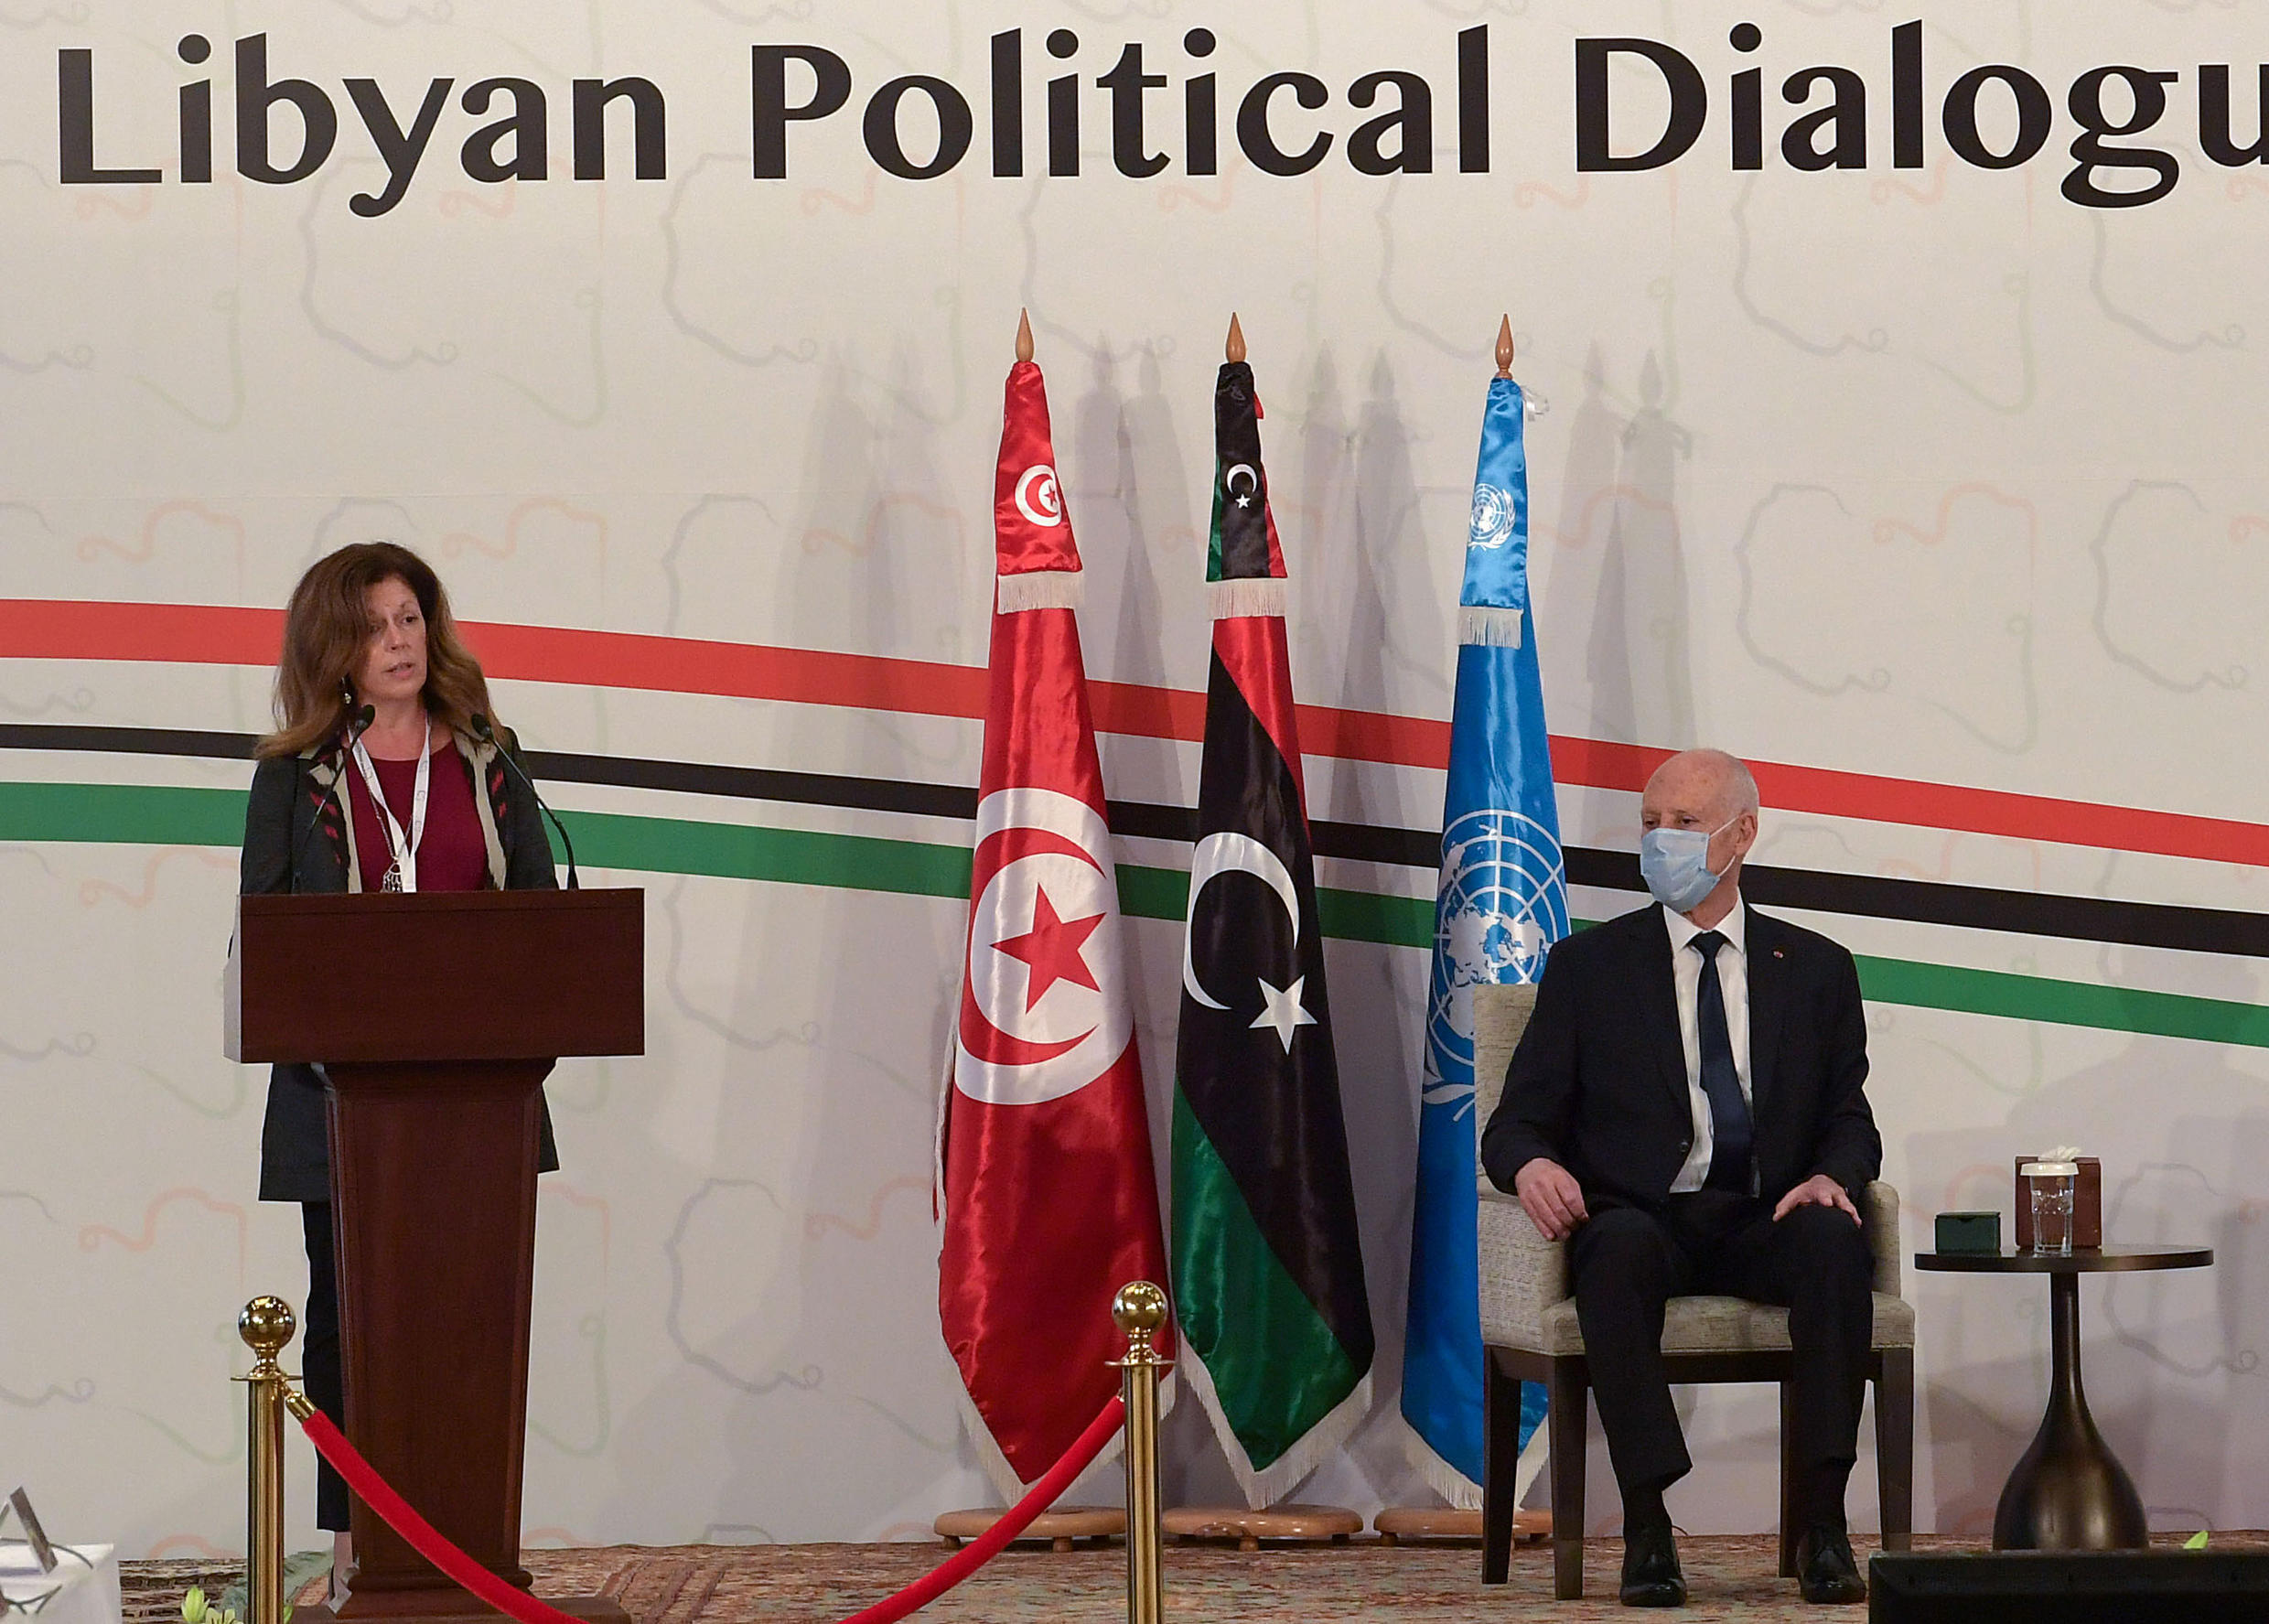 UN acting envoy to Libya Stephanie Williams speaks at the opening of the Libyan Political Dialogue Forum hosted in Gammarth on the outskirts of the Tunisian capital